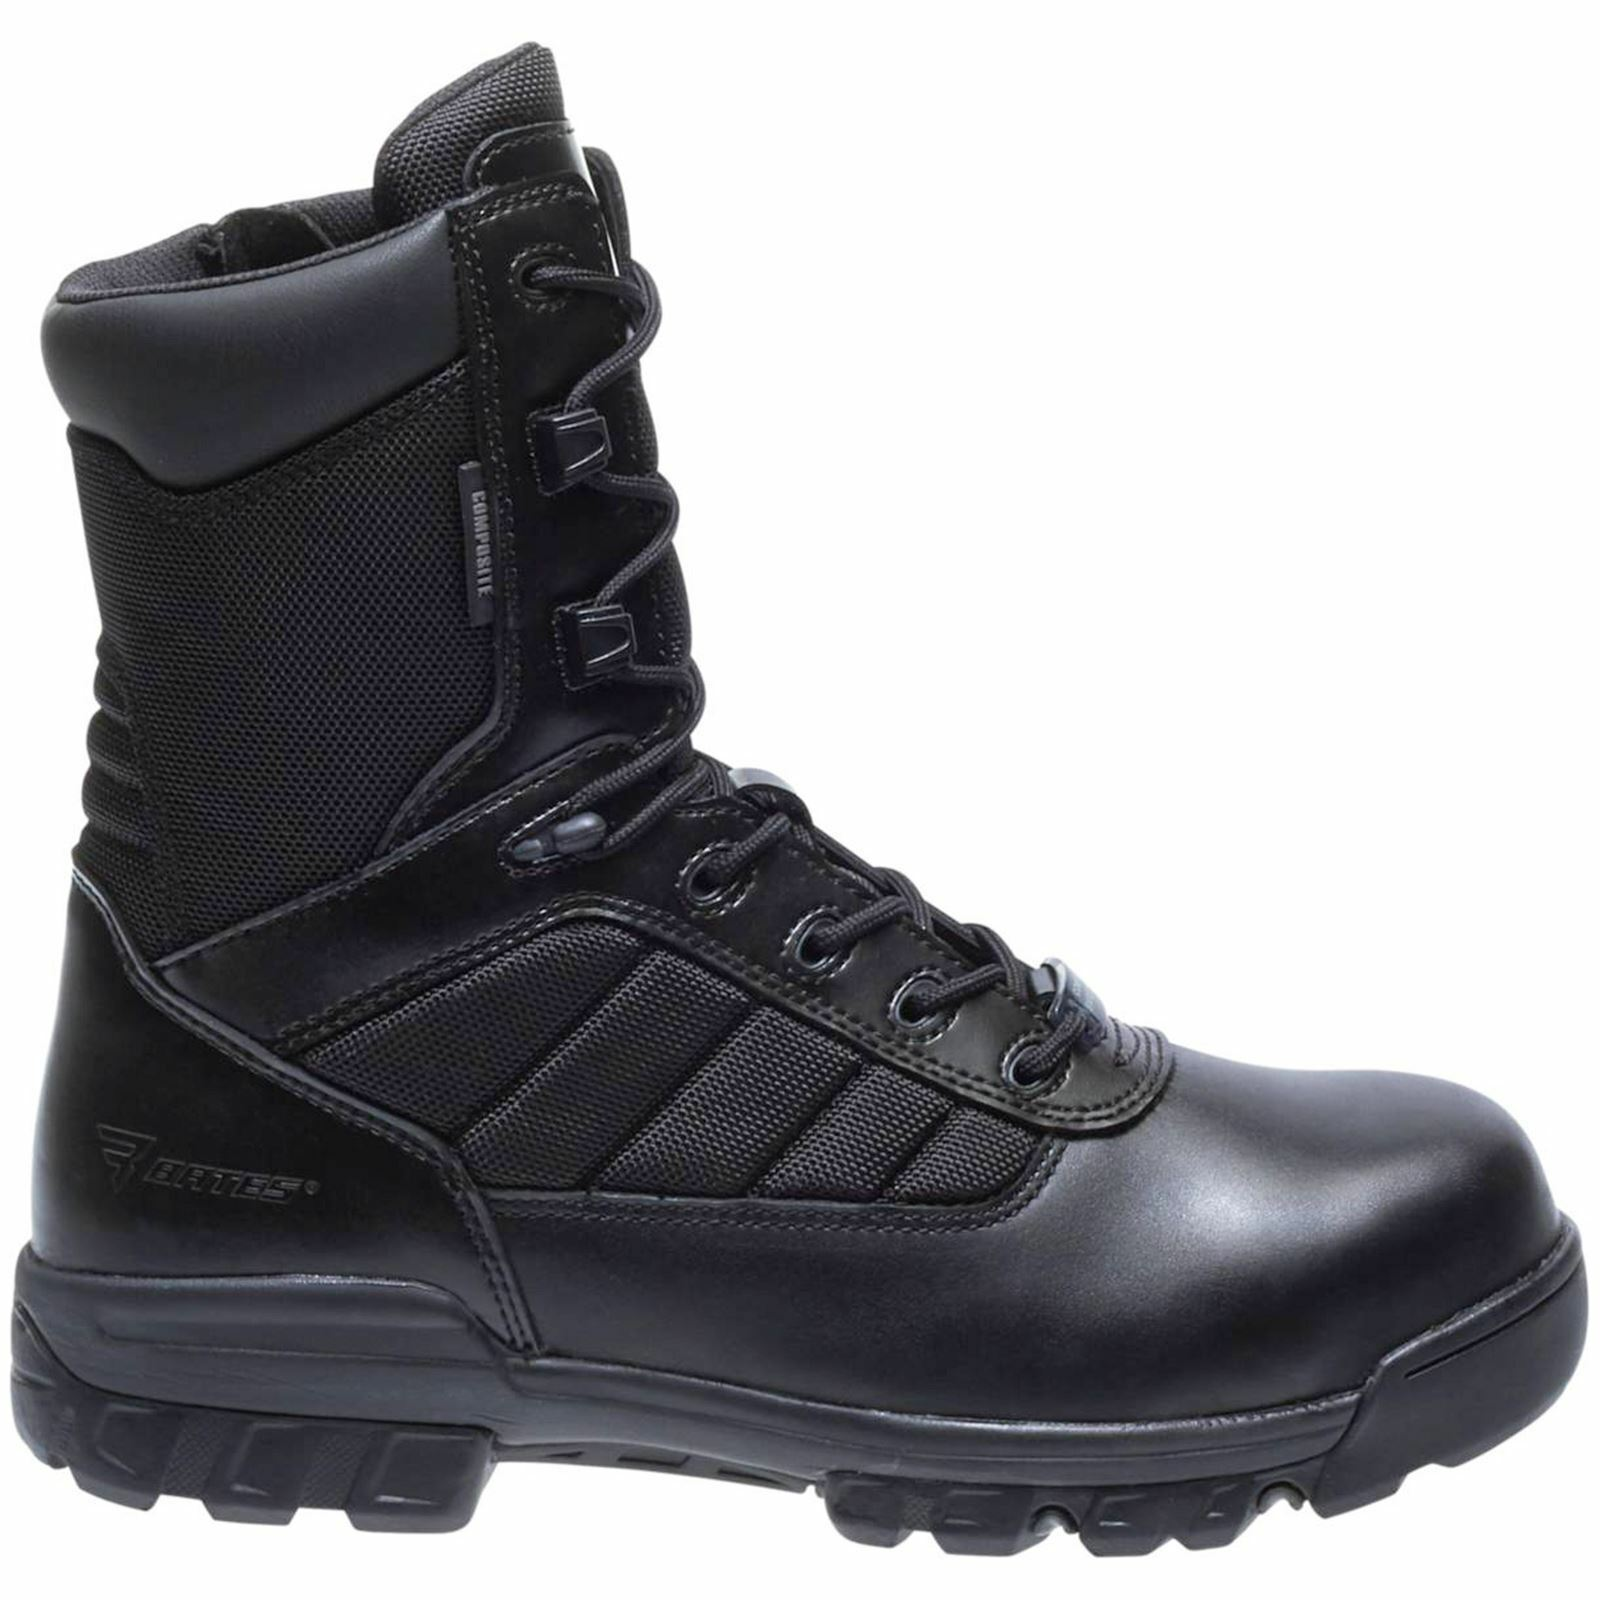 Bates Tactical Sport 8 Inch Safety Toe Black Mens Leather Combat Zip-up Boots